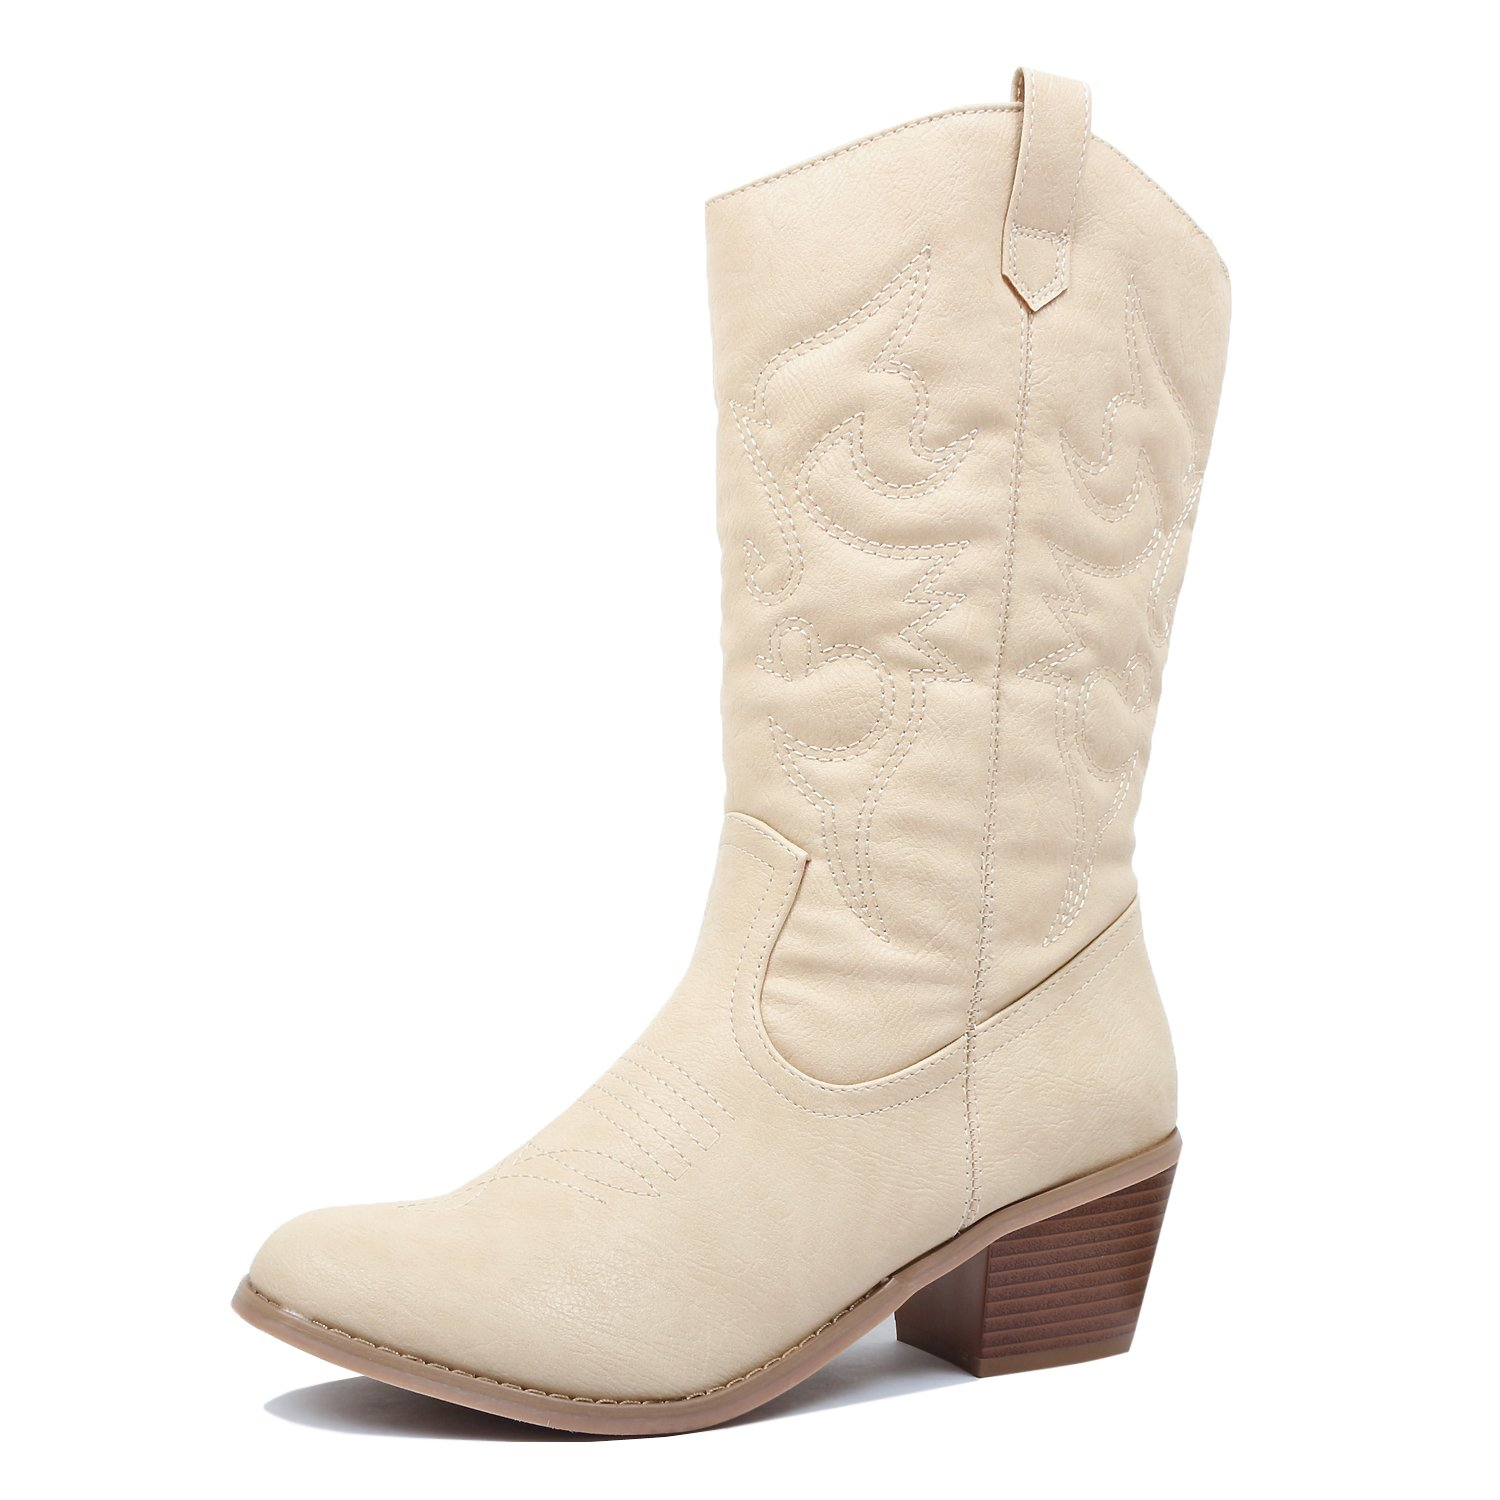 West Blvd Miami Cowboy Western Boots Boots, Beige Pu, 10 (B) M US by West Blvd (Image #1)